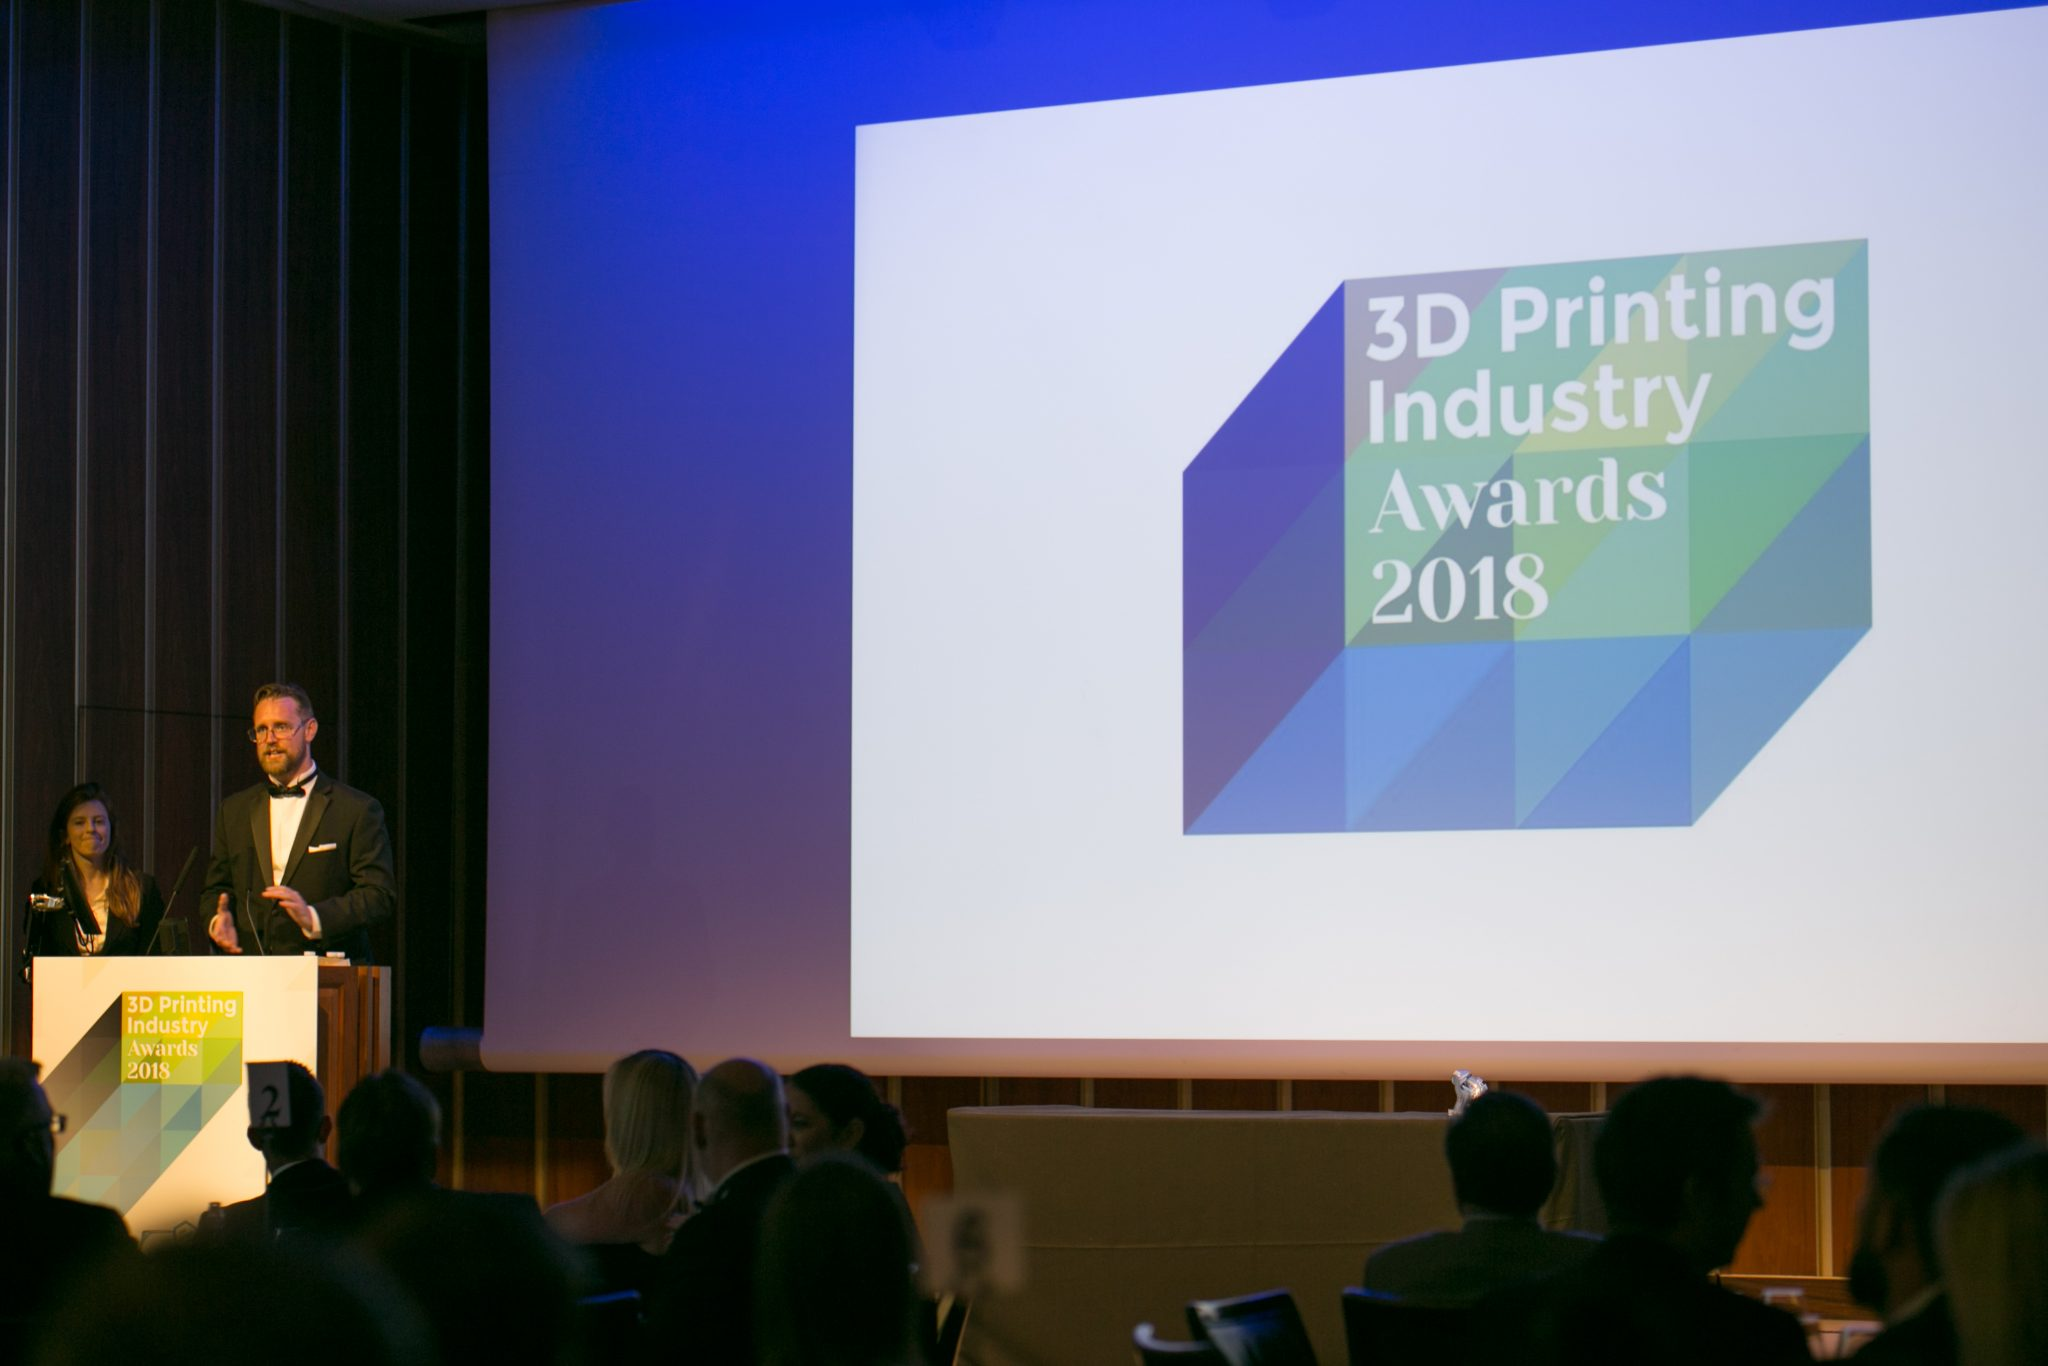 The 2018 3D Printing Industry Awards.